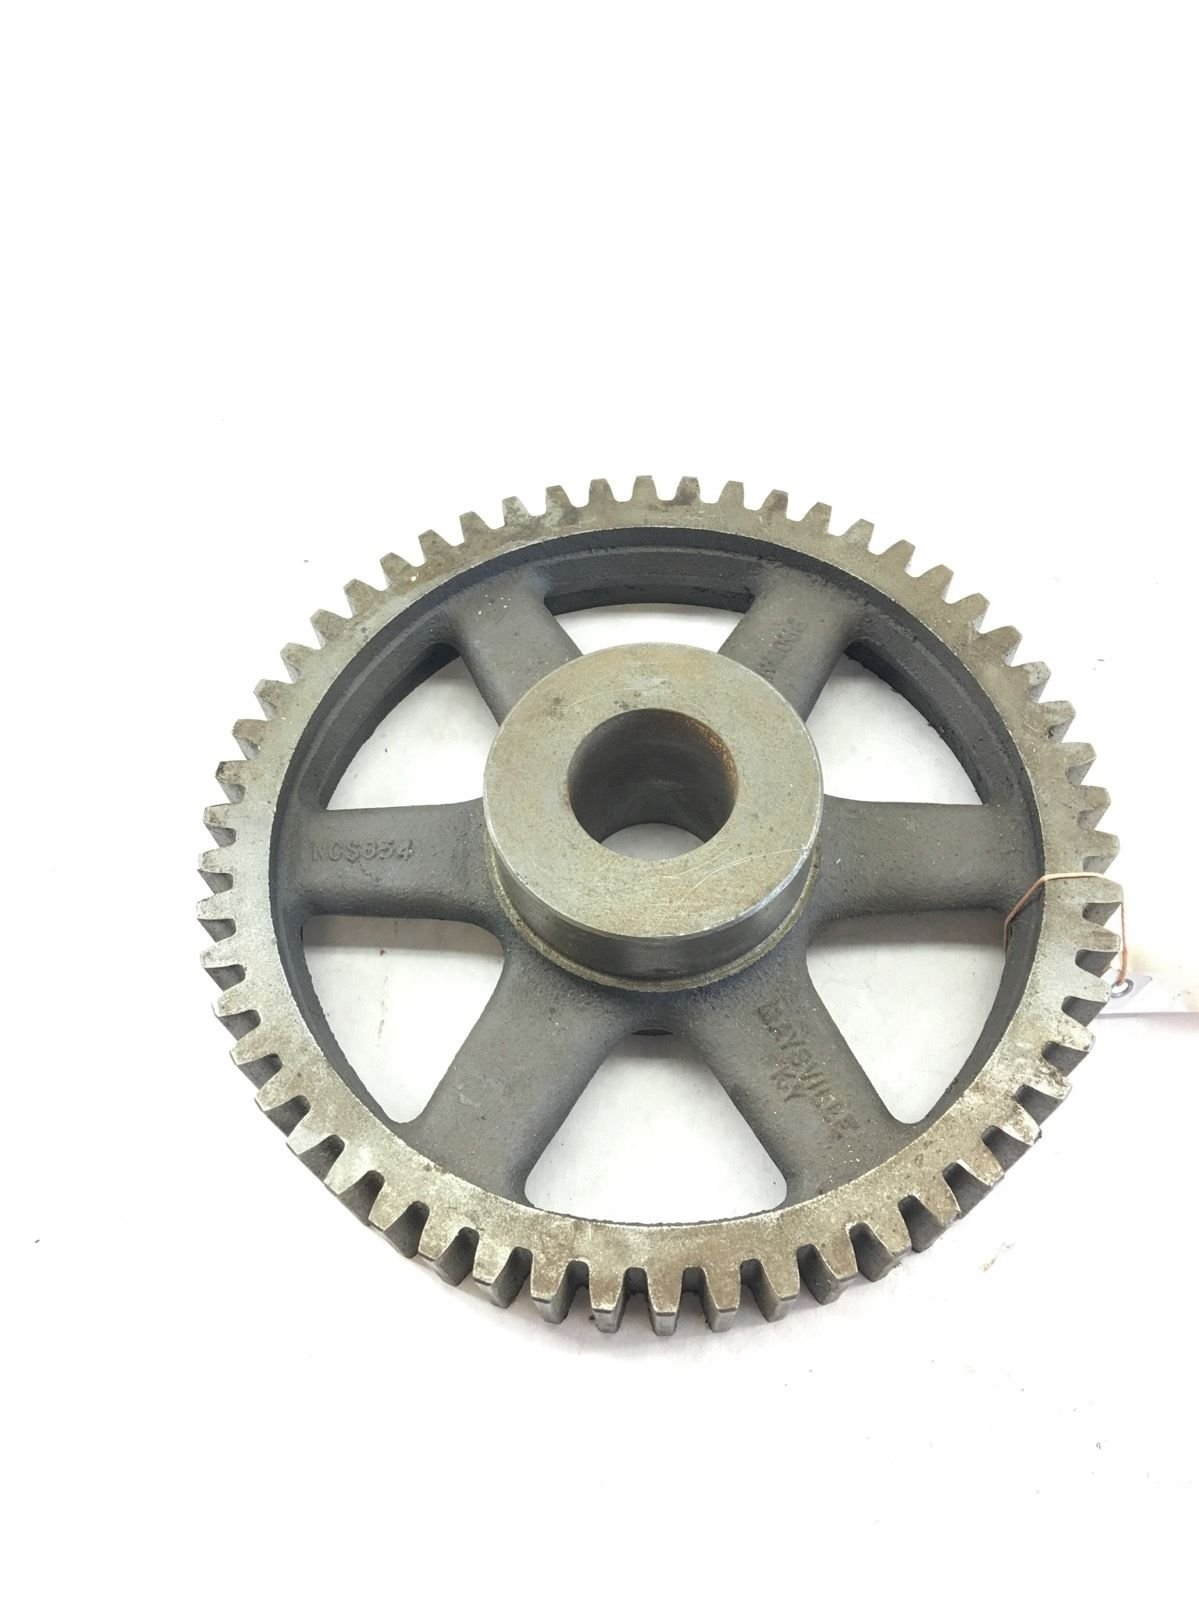 NEW NO BOX BROWNING NCS654 14 1/2 SPUR GEAR CAST IRON, 6� PITCH, 54 TEETH, B385 1